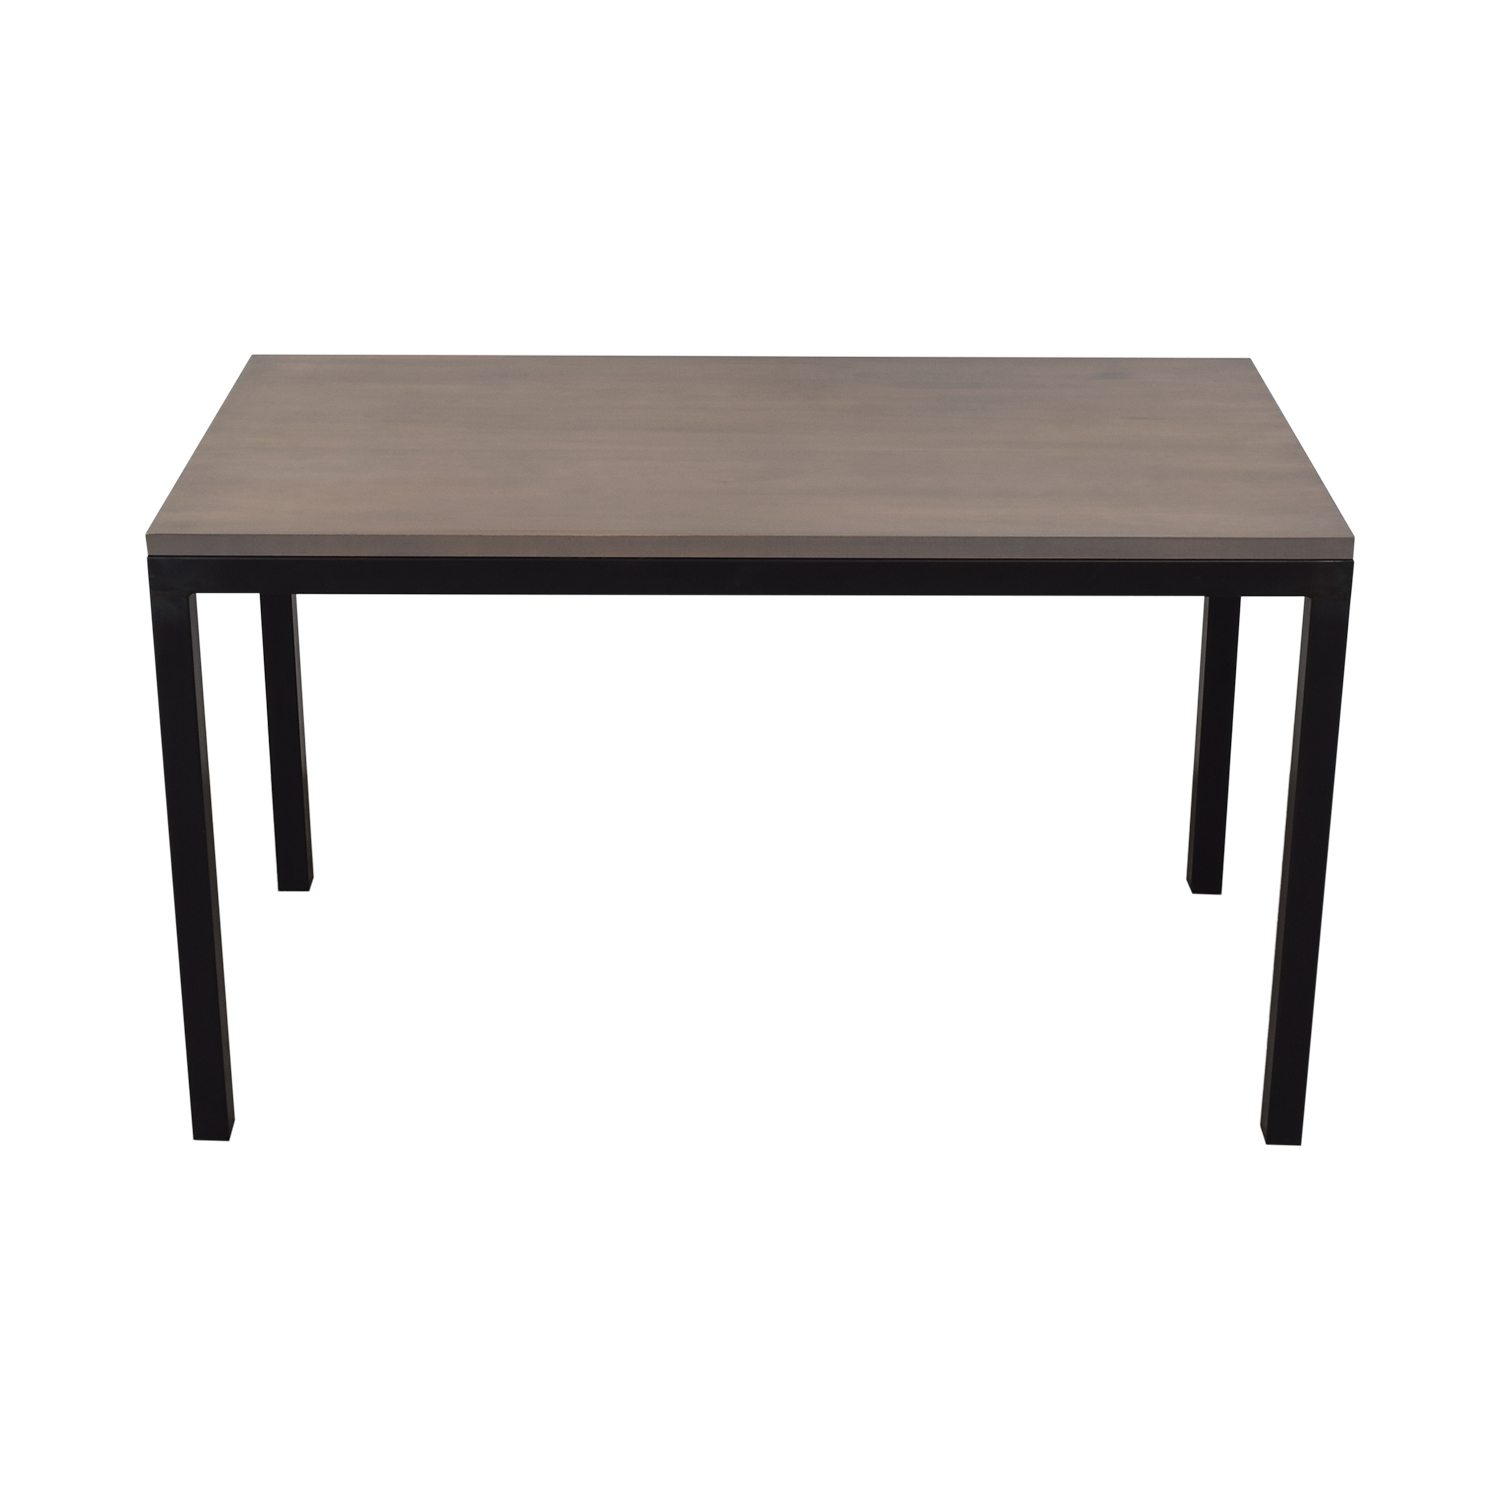 Room & Board Room & Board Wood Counter Height Table for sale